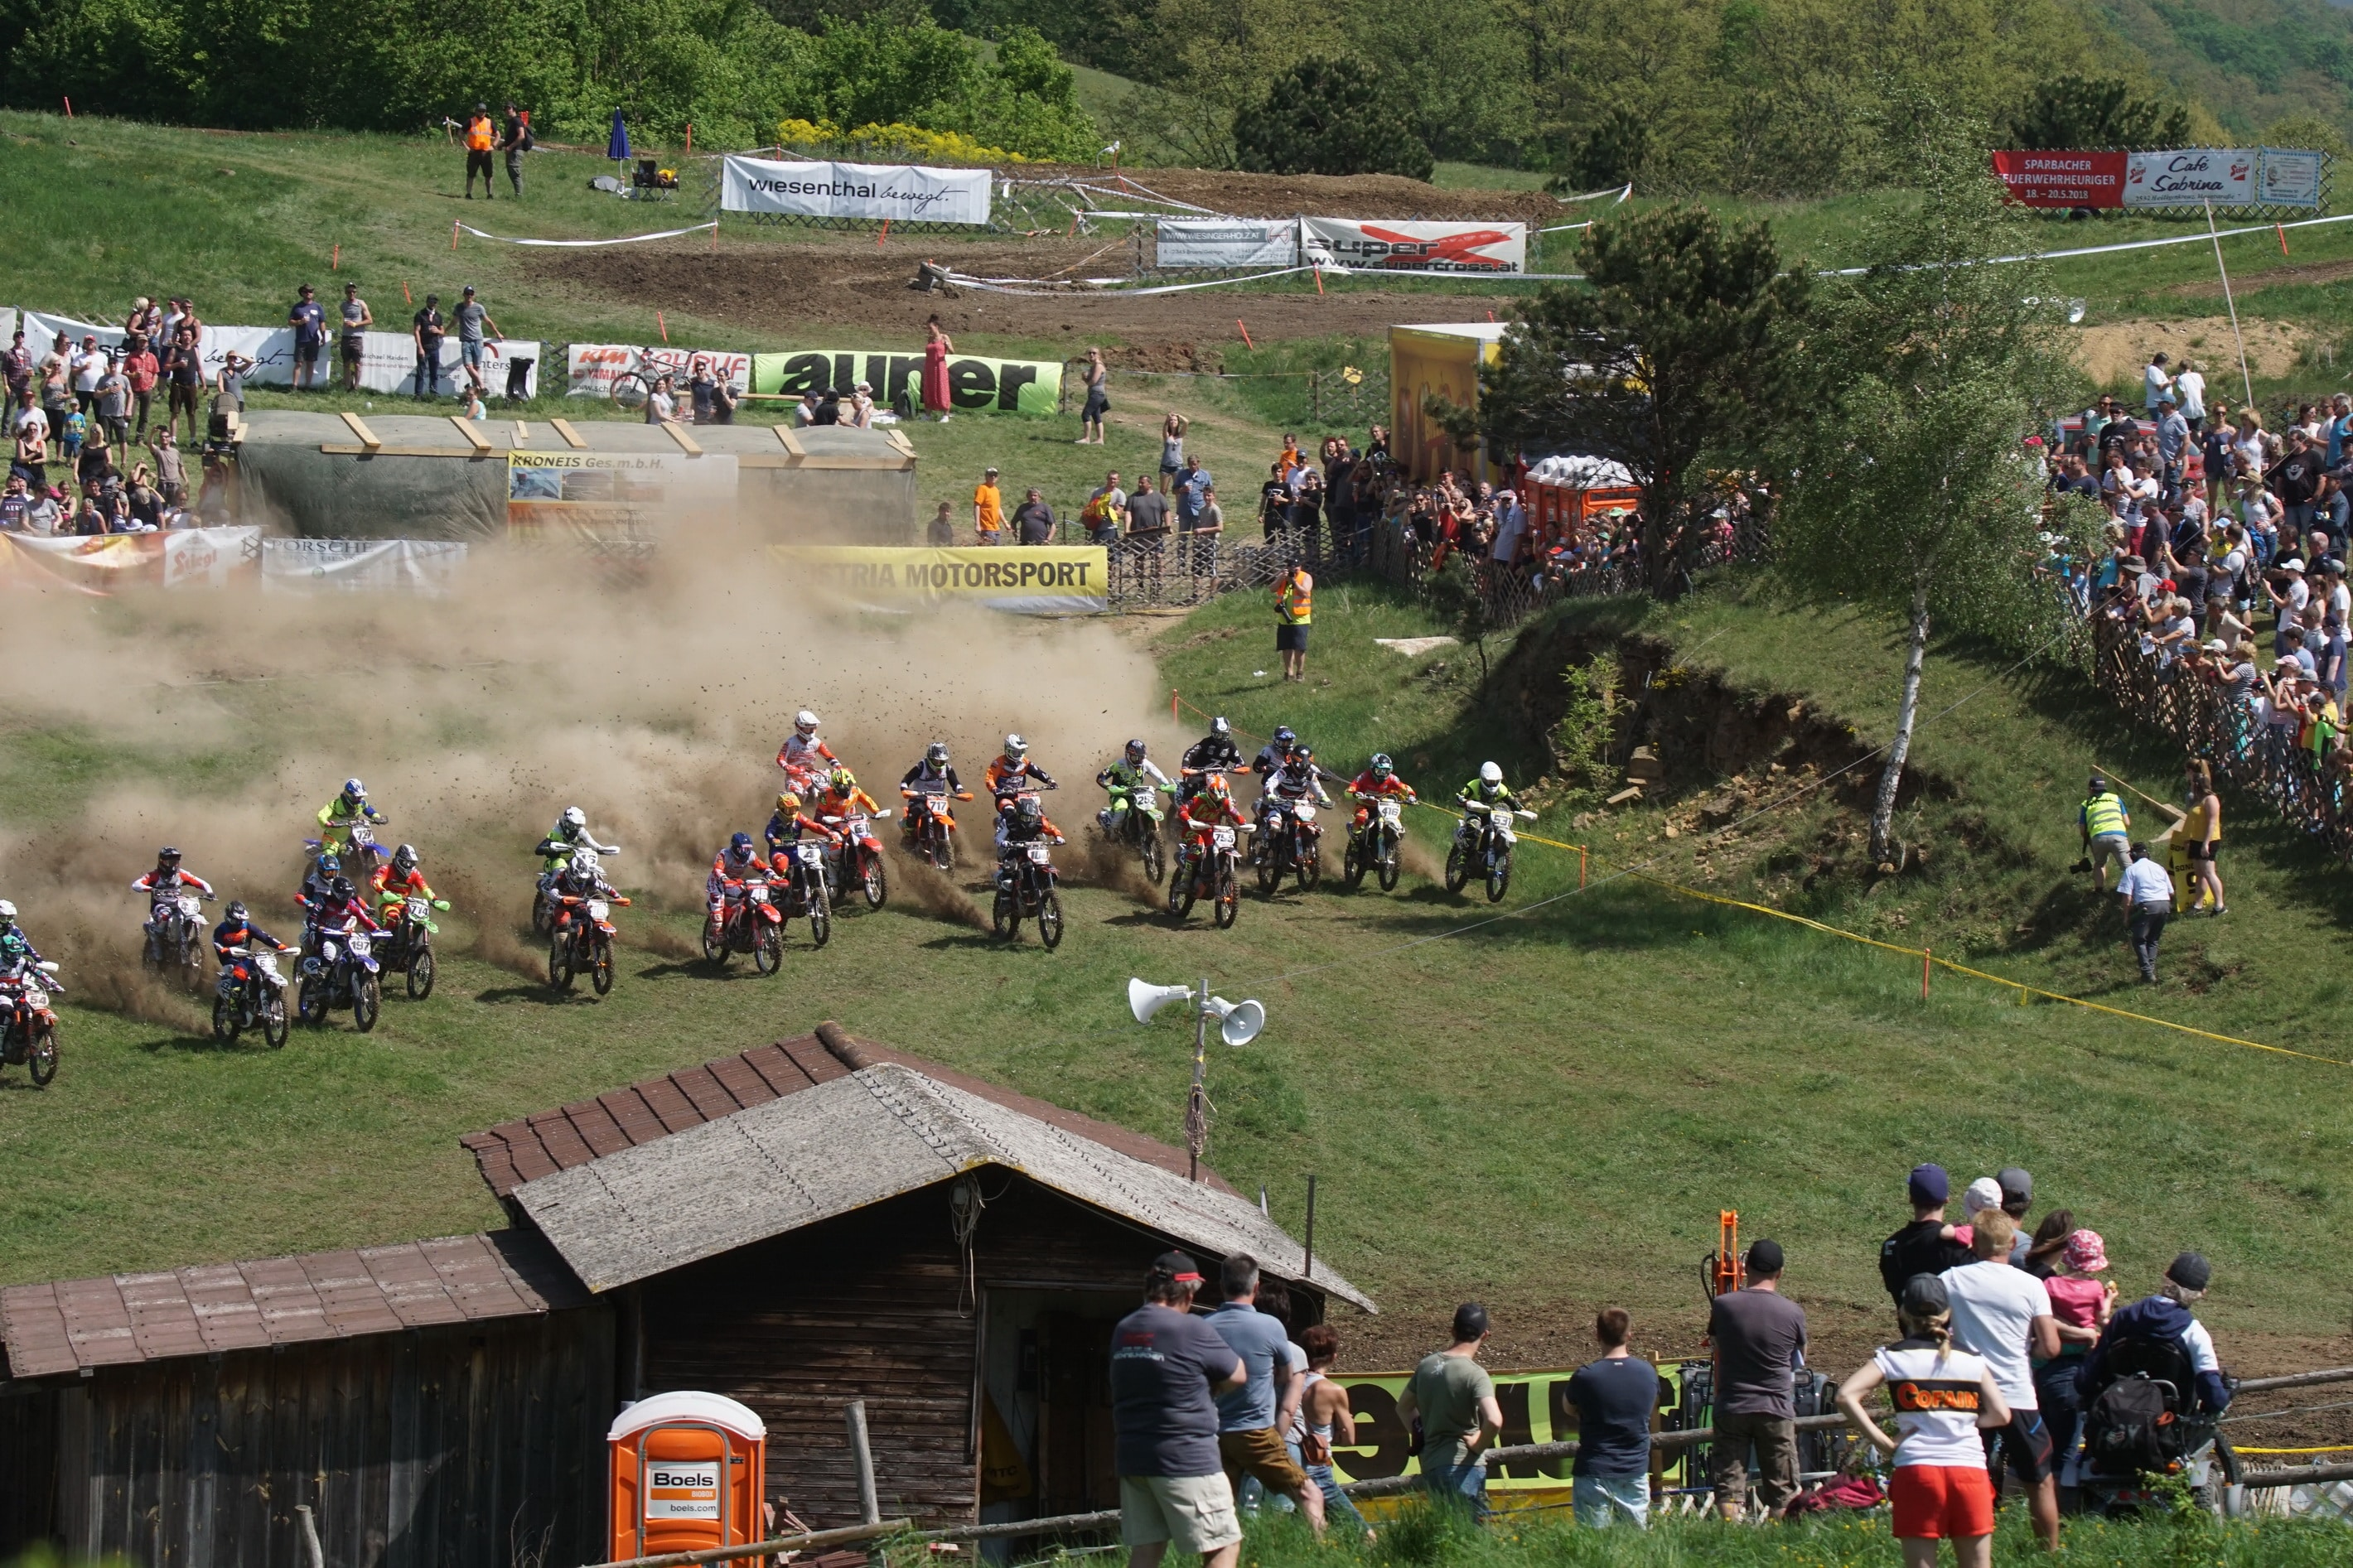 DSC 368_Moto Cross Sittendorf Teil1 am 29.04.2018